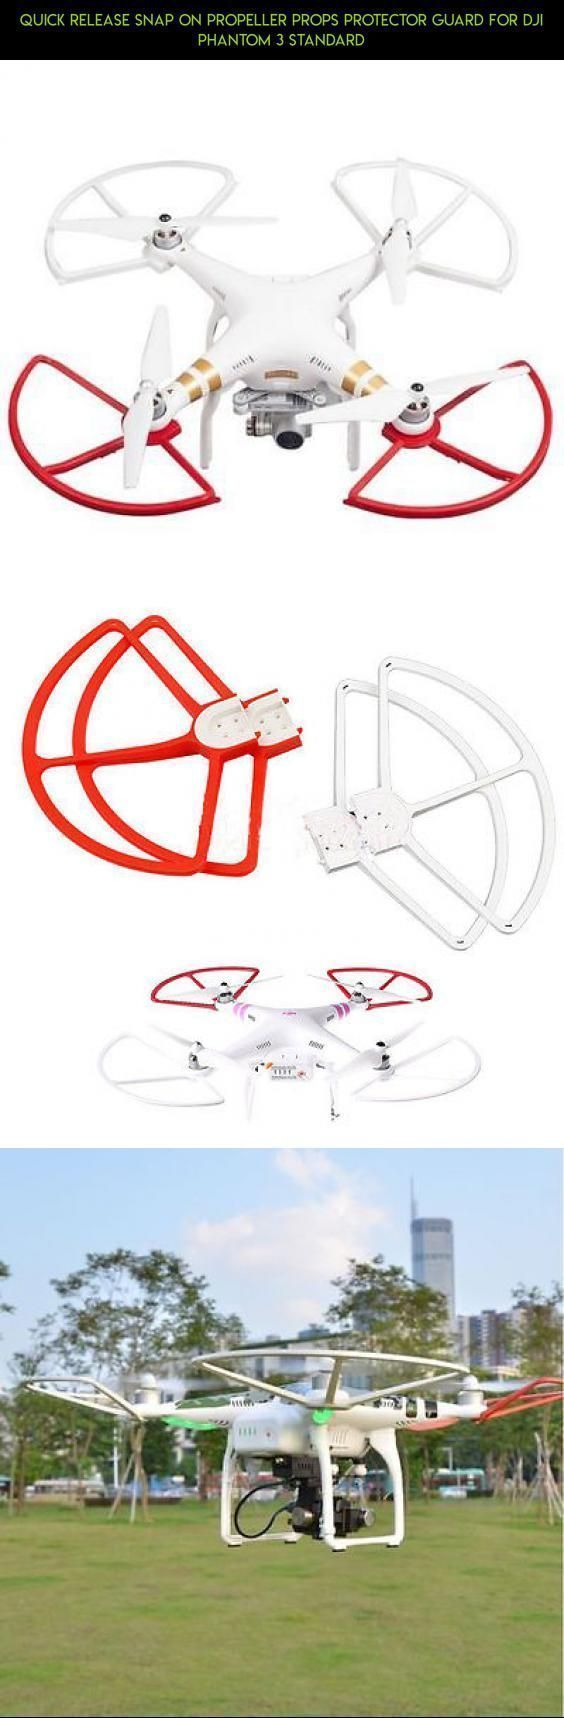 Quick Release Snap On Propeller Props Protector Guard For DJI Phantom 3 Standard #plans #tech #camera #gadgets #kit #dji #standard #products #fpv #racing #phantom #propeller #guards #shopping #technology #3 #drone #parts #phantom3droneproducts